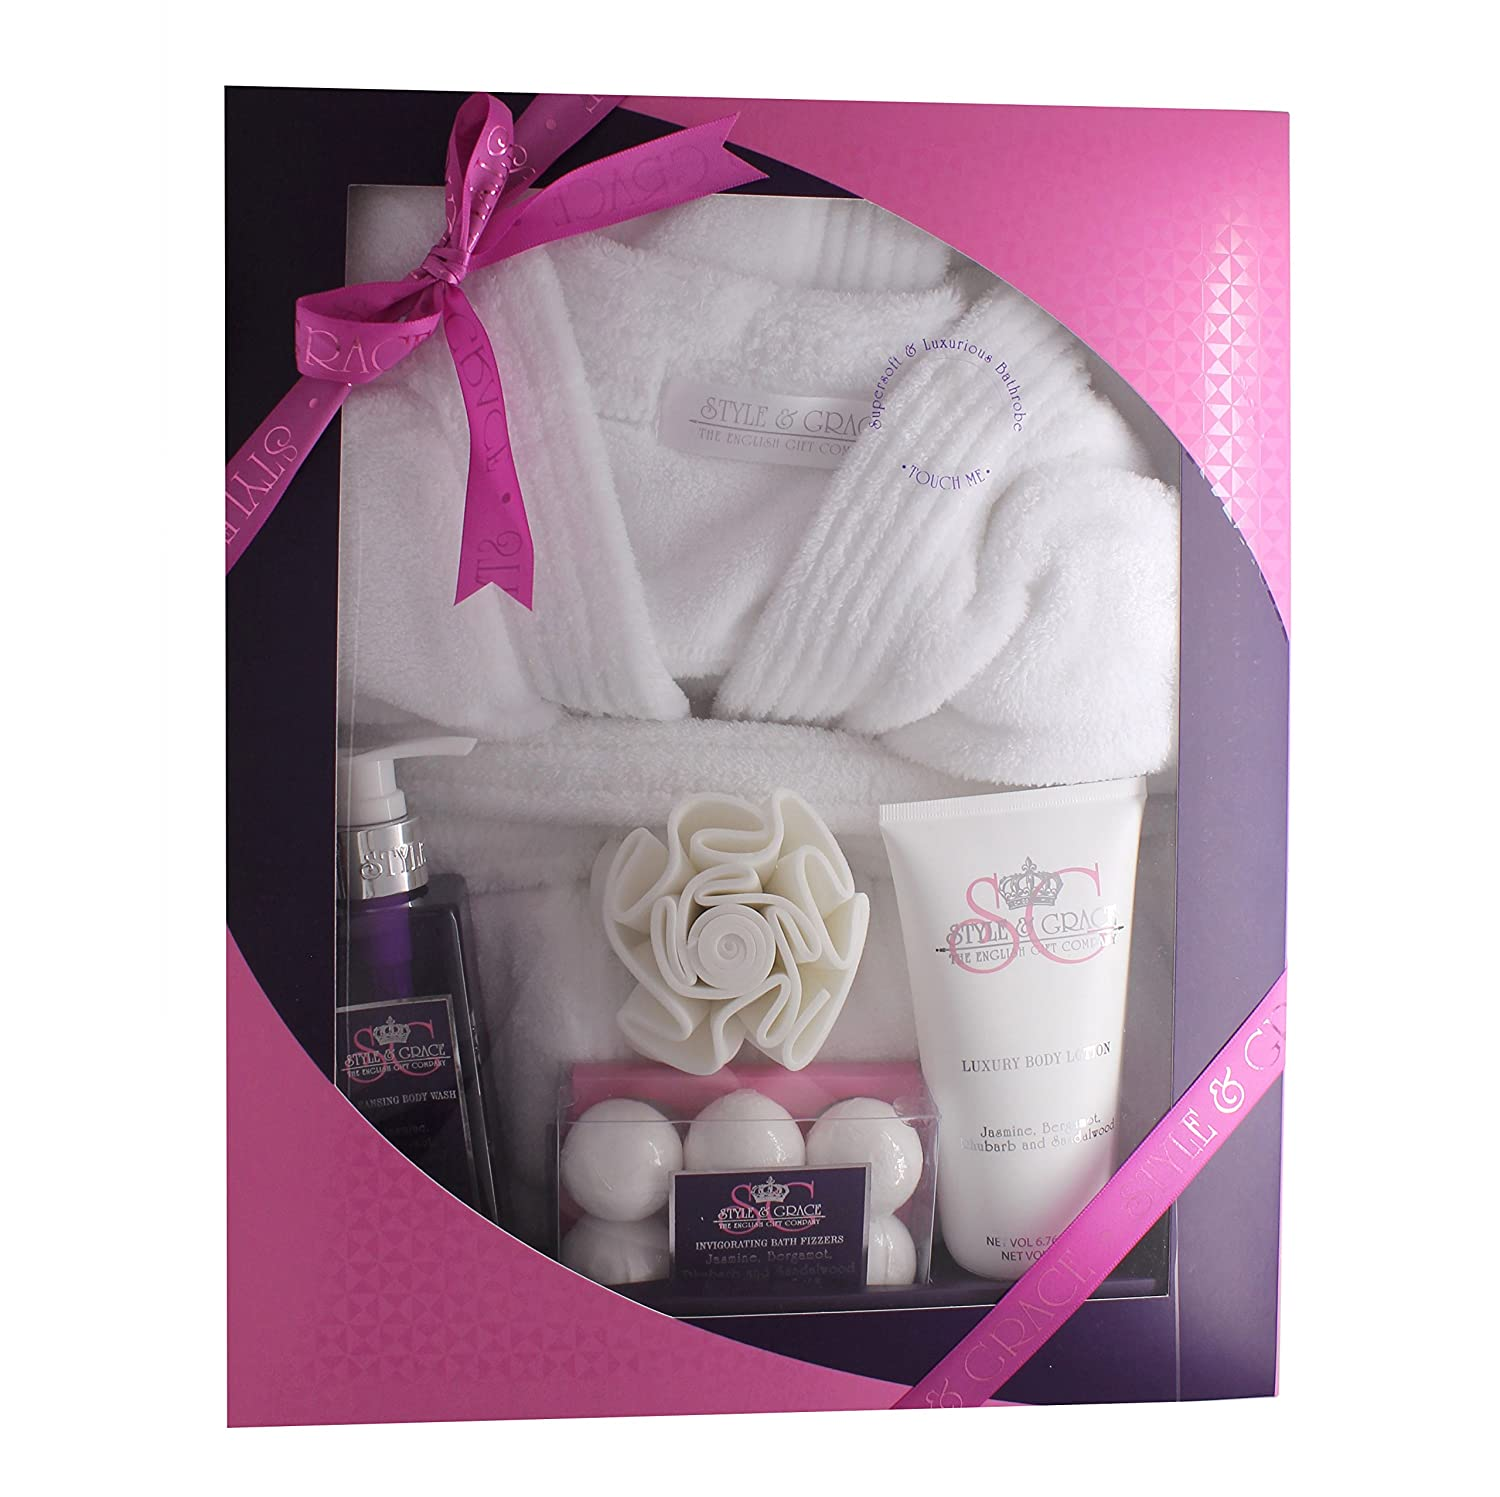 65dbe81053 Ladies Luxury Bathrobe Robe Pamper Gift Set For Her Dressing Gown Xmas Gift  New  Amazon.co.uk  Health   Personal Care